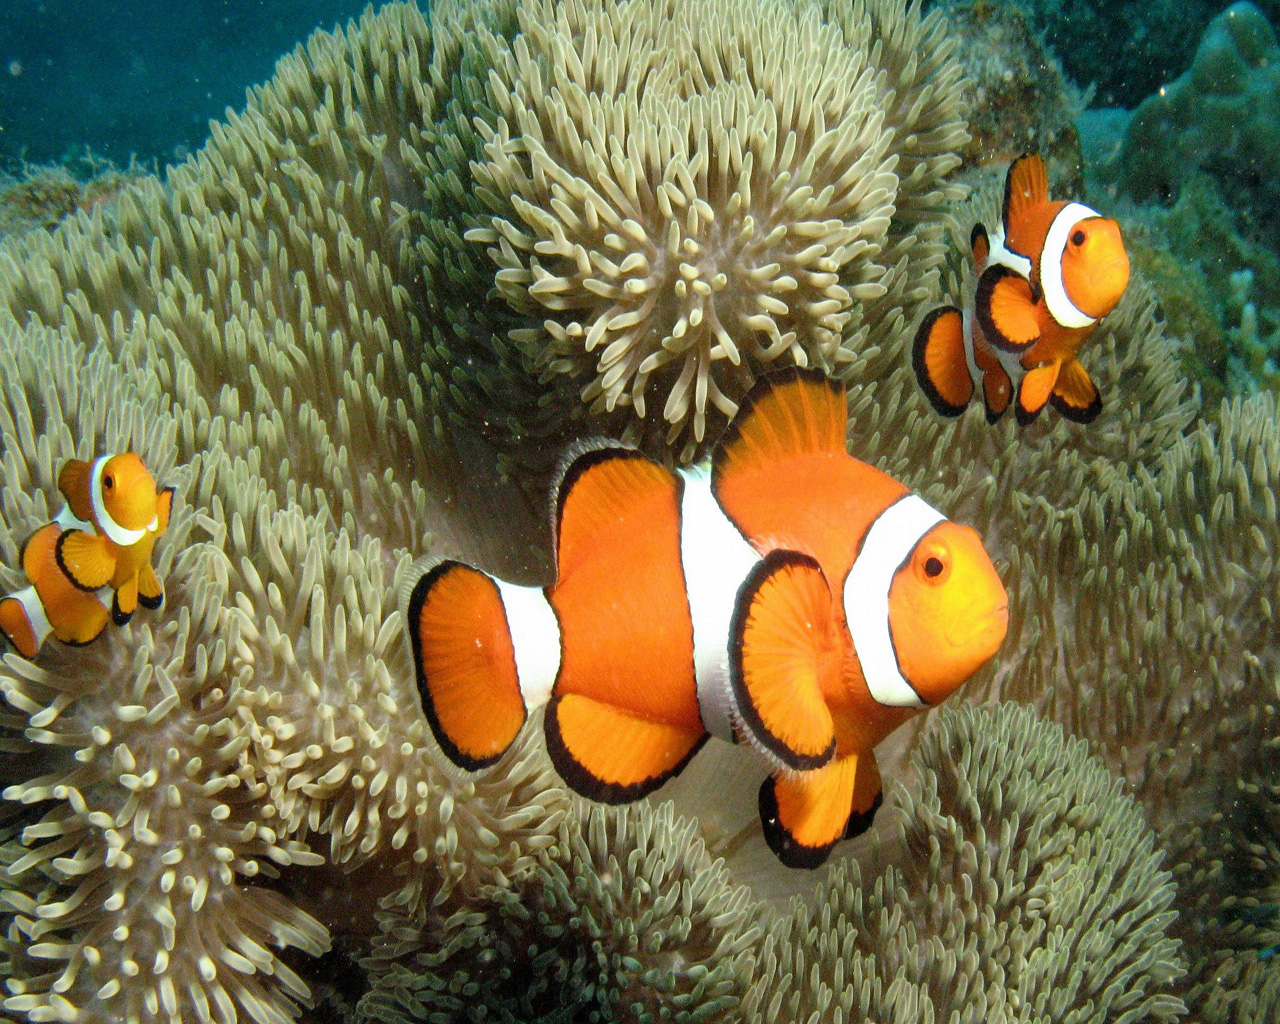 Cute Clown Fish Wallpapers For Mac Fish Clown Megalodon Shark Mac 1280x1024